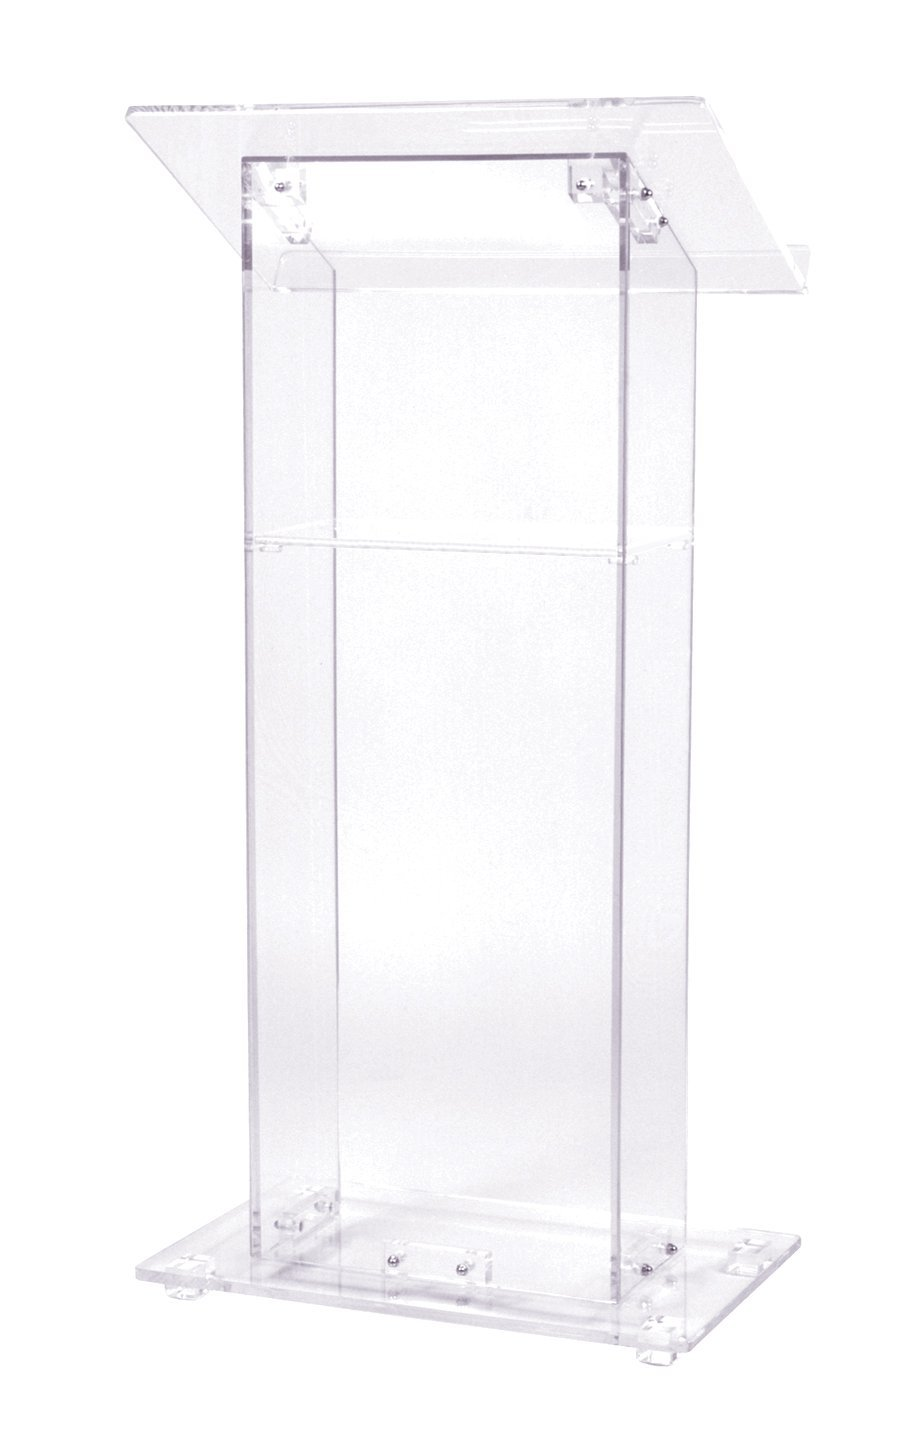 Acrylic Lectern With Shelf, Crystal Clear Decoration Table Podium Furniture Plexiglass